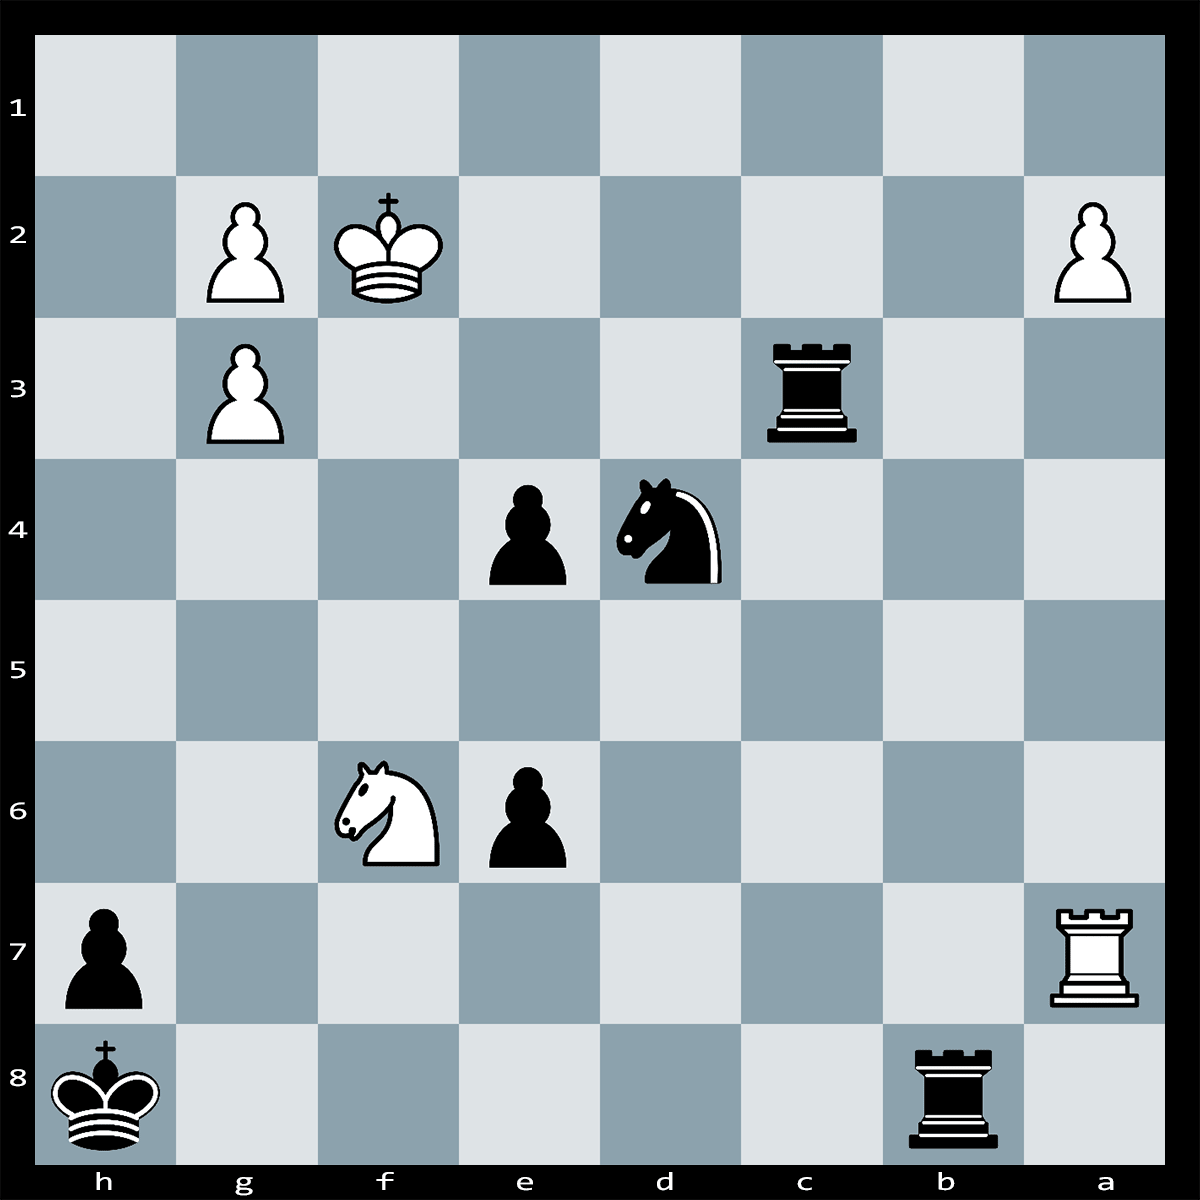 Black to Play, Checkmate in 3: Handke vs Timofeev | Chess Puzzle #201